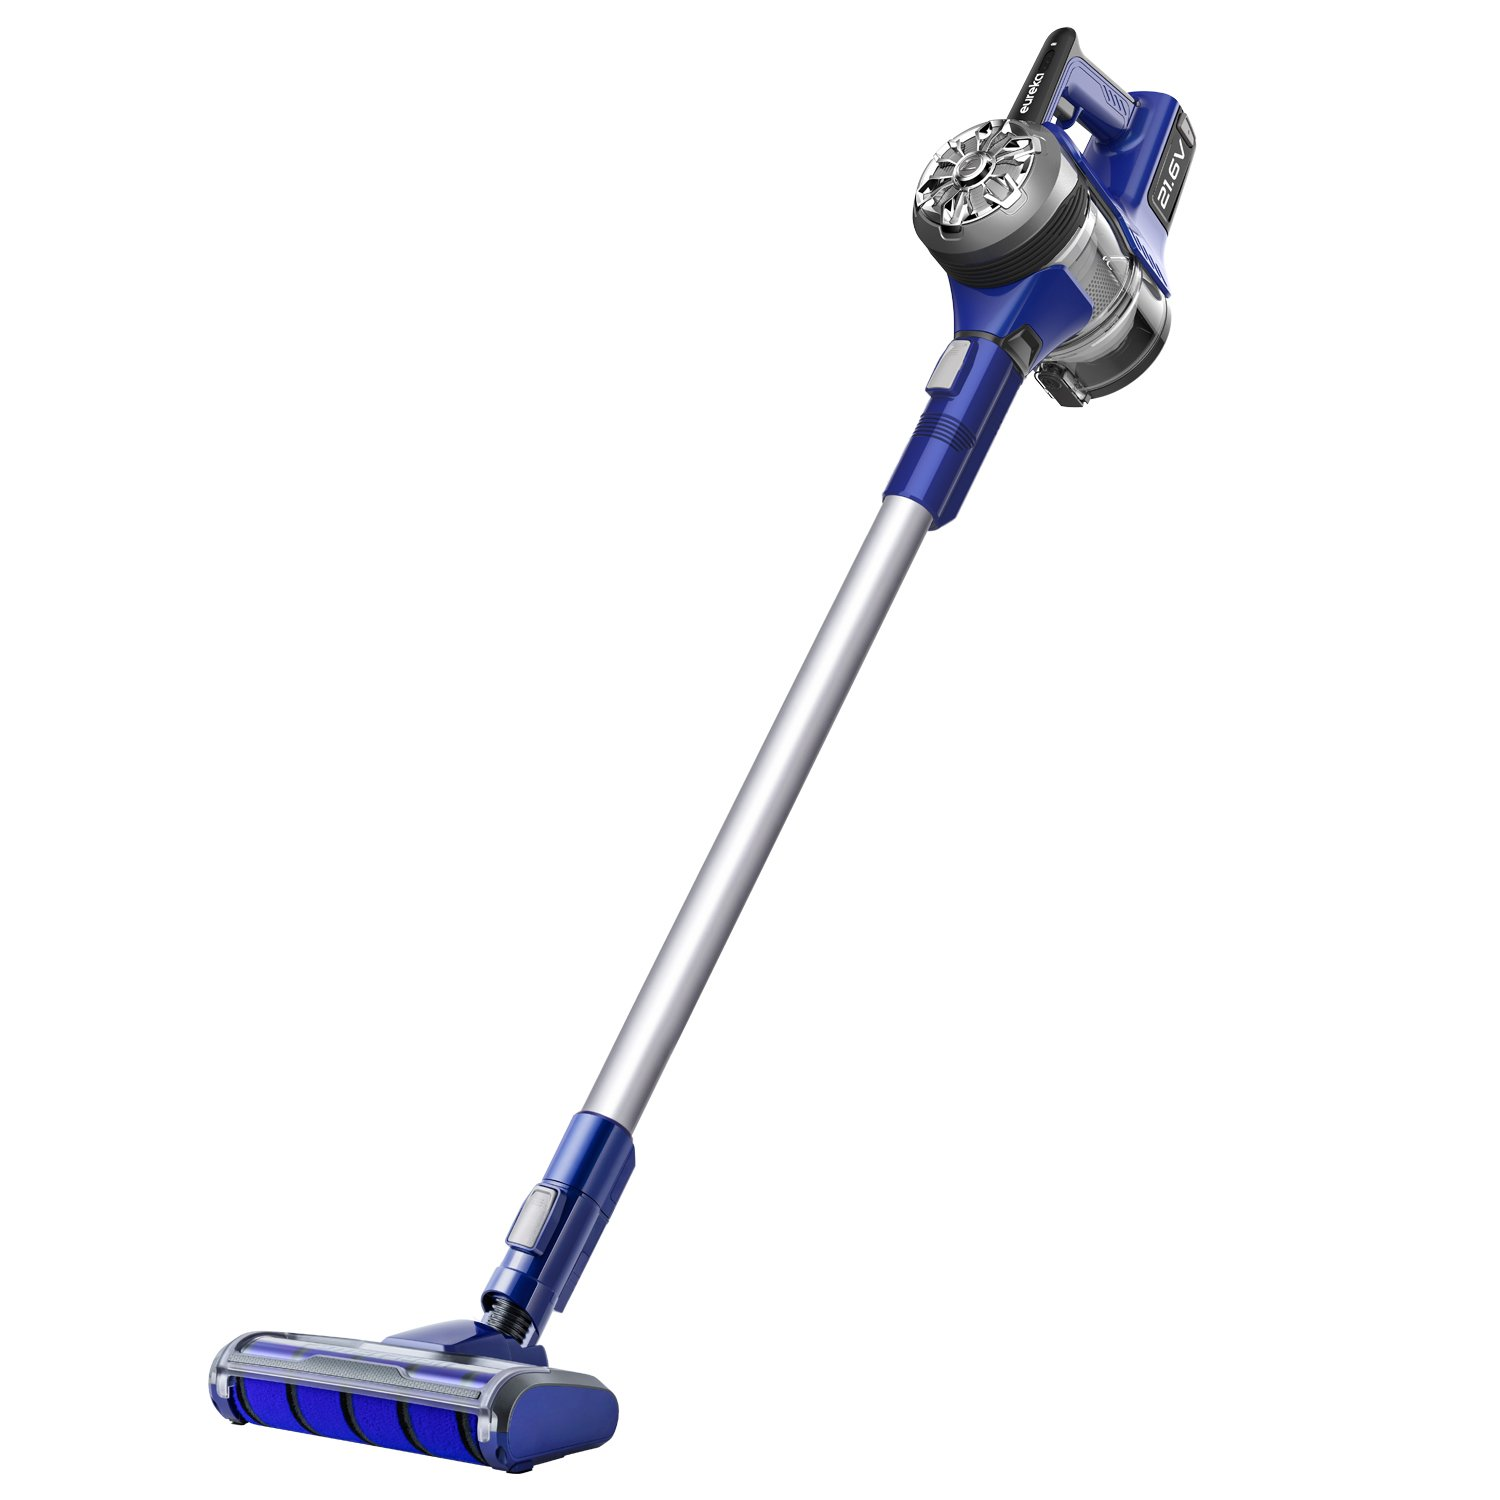 Eureka NEC122A Power Plush Cordless 2-in-1 Stick Vacuum, Rechargeable Lithium Ion Battery with Wall Mount, Gray/Blue Violet